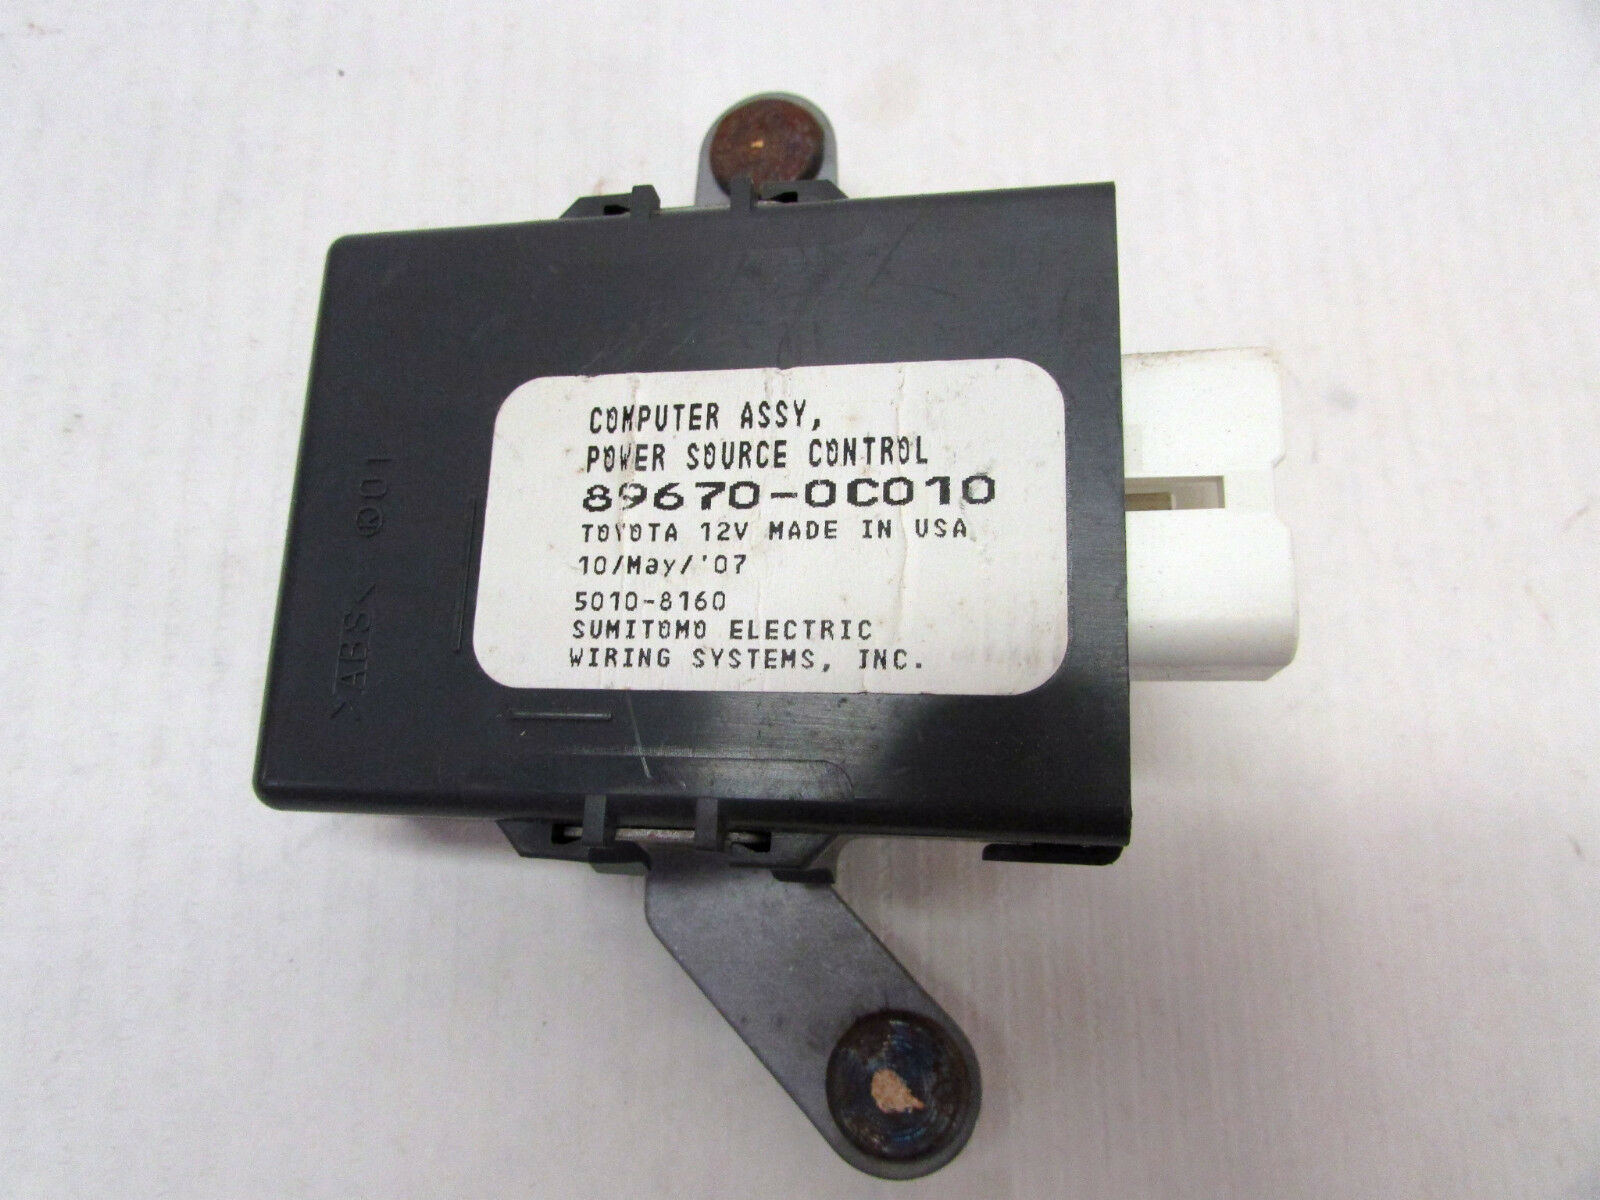 07 10 Toyota Tundra Power Source Control Module 6104 Ebay Sumitomo Electric Wiring Systems